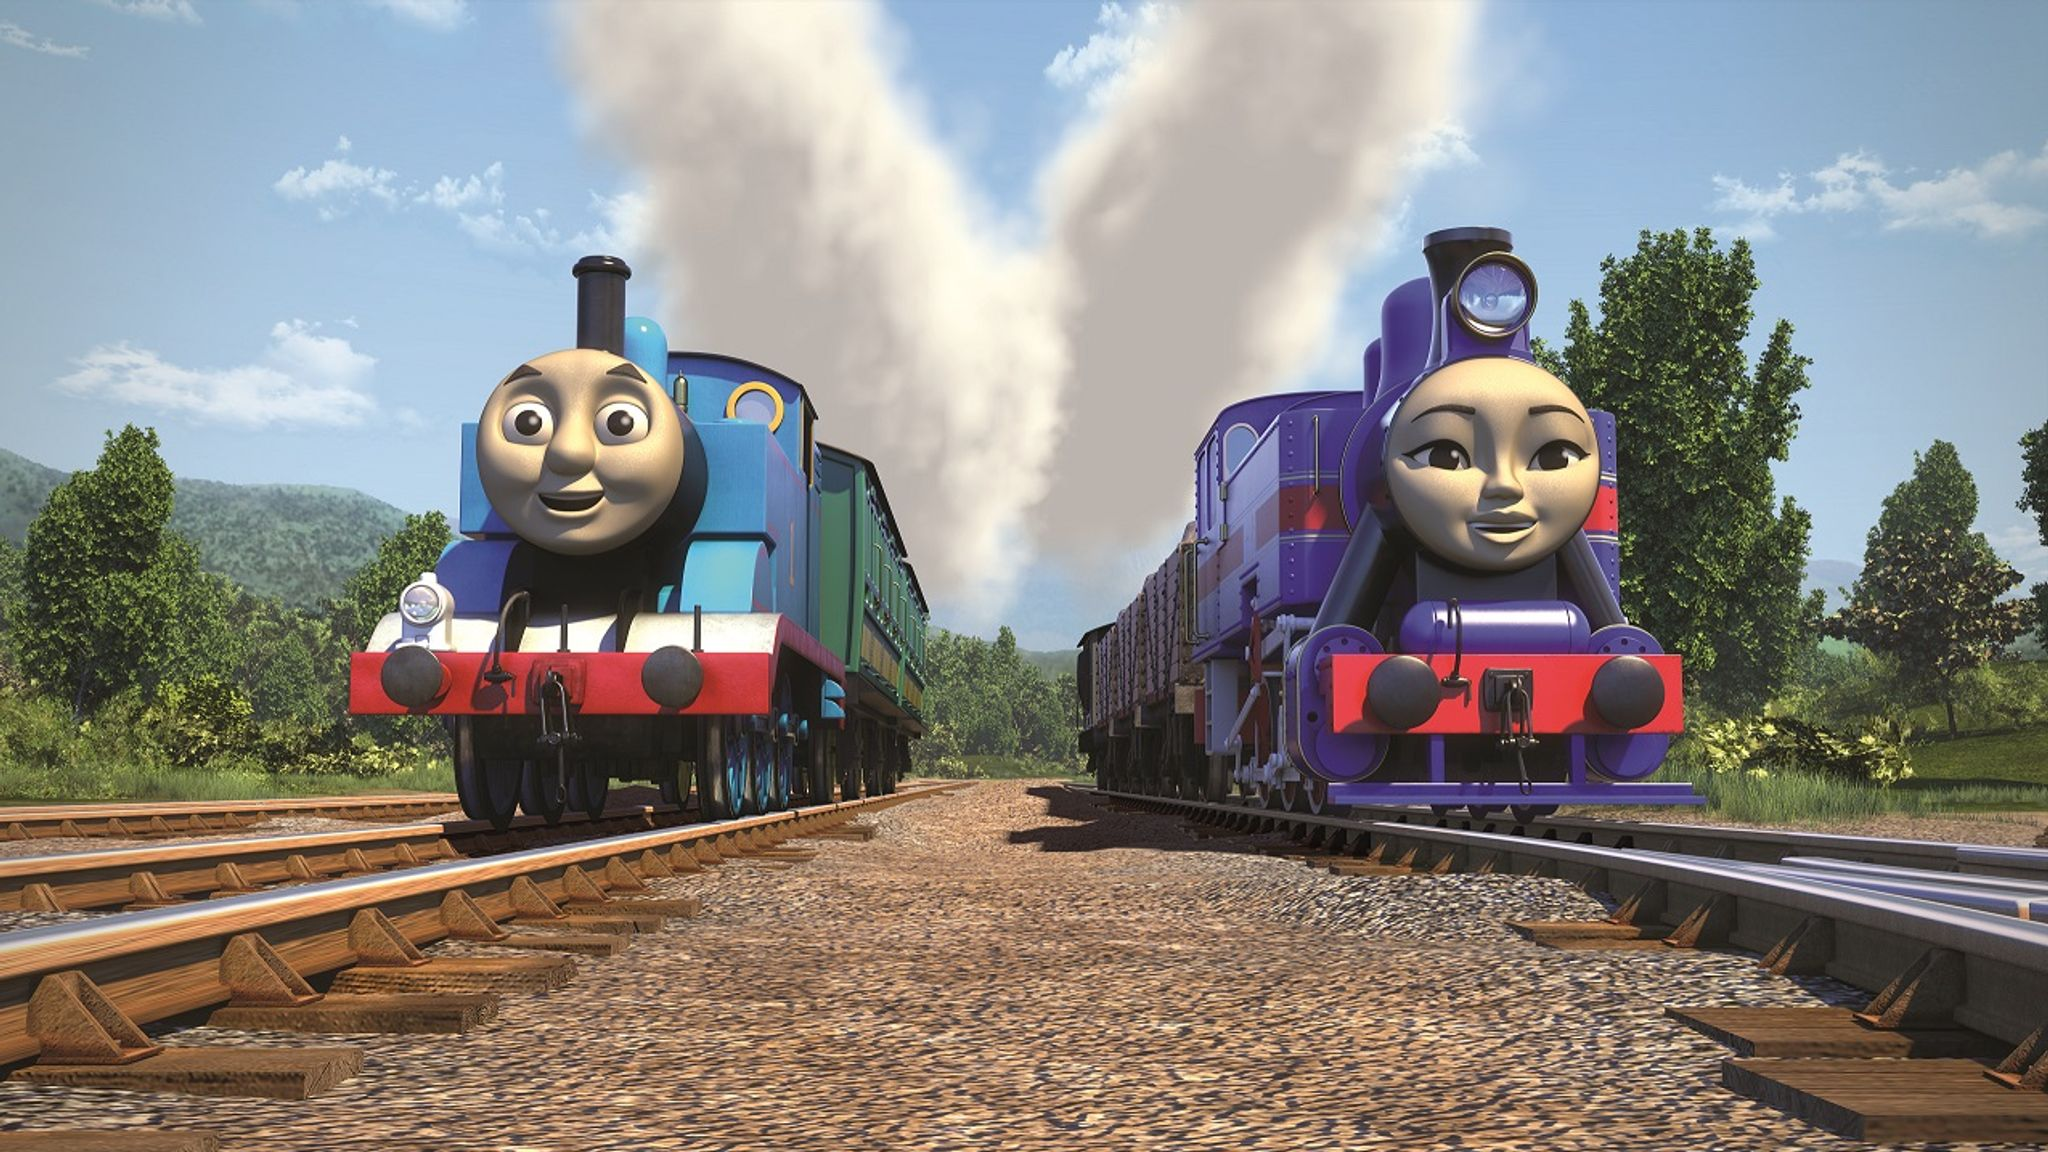 Thomas The Tank Engine S Global Friends Ents Arts News Sky News